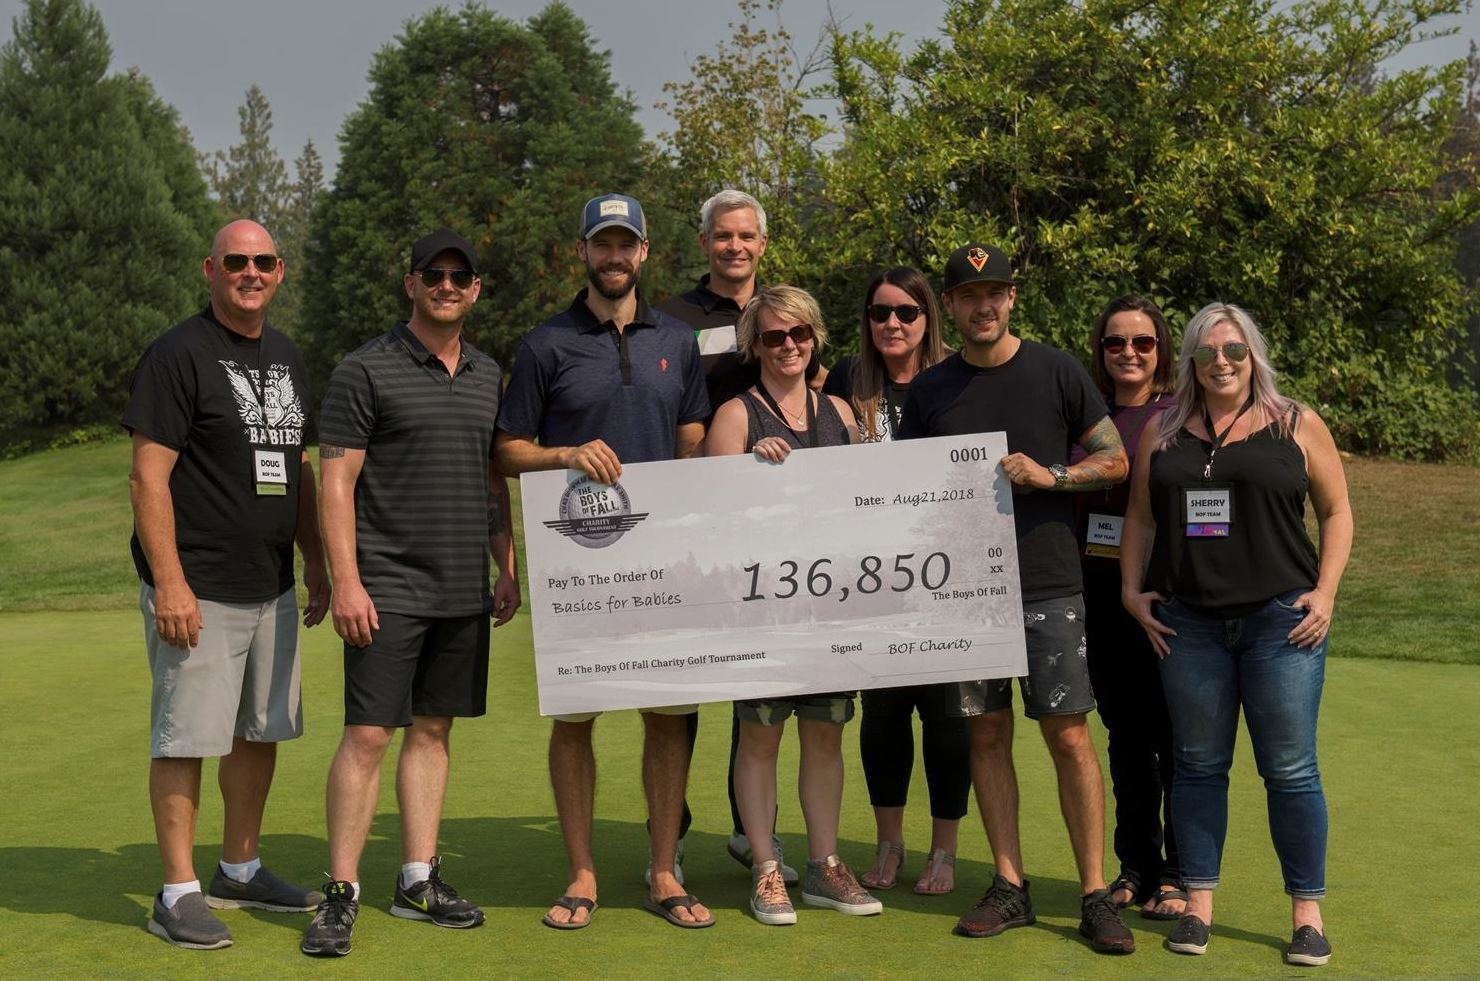 Boys of Fall Charity Golf Tournament - Holding Check of Donation